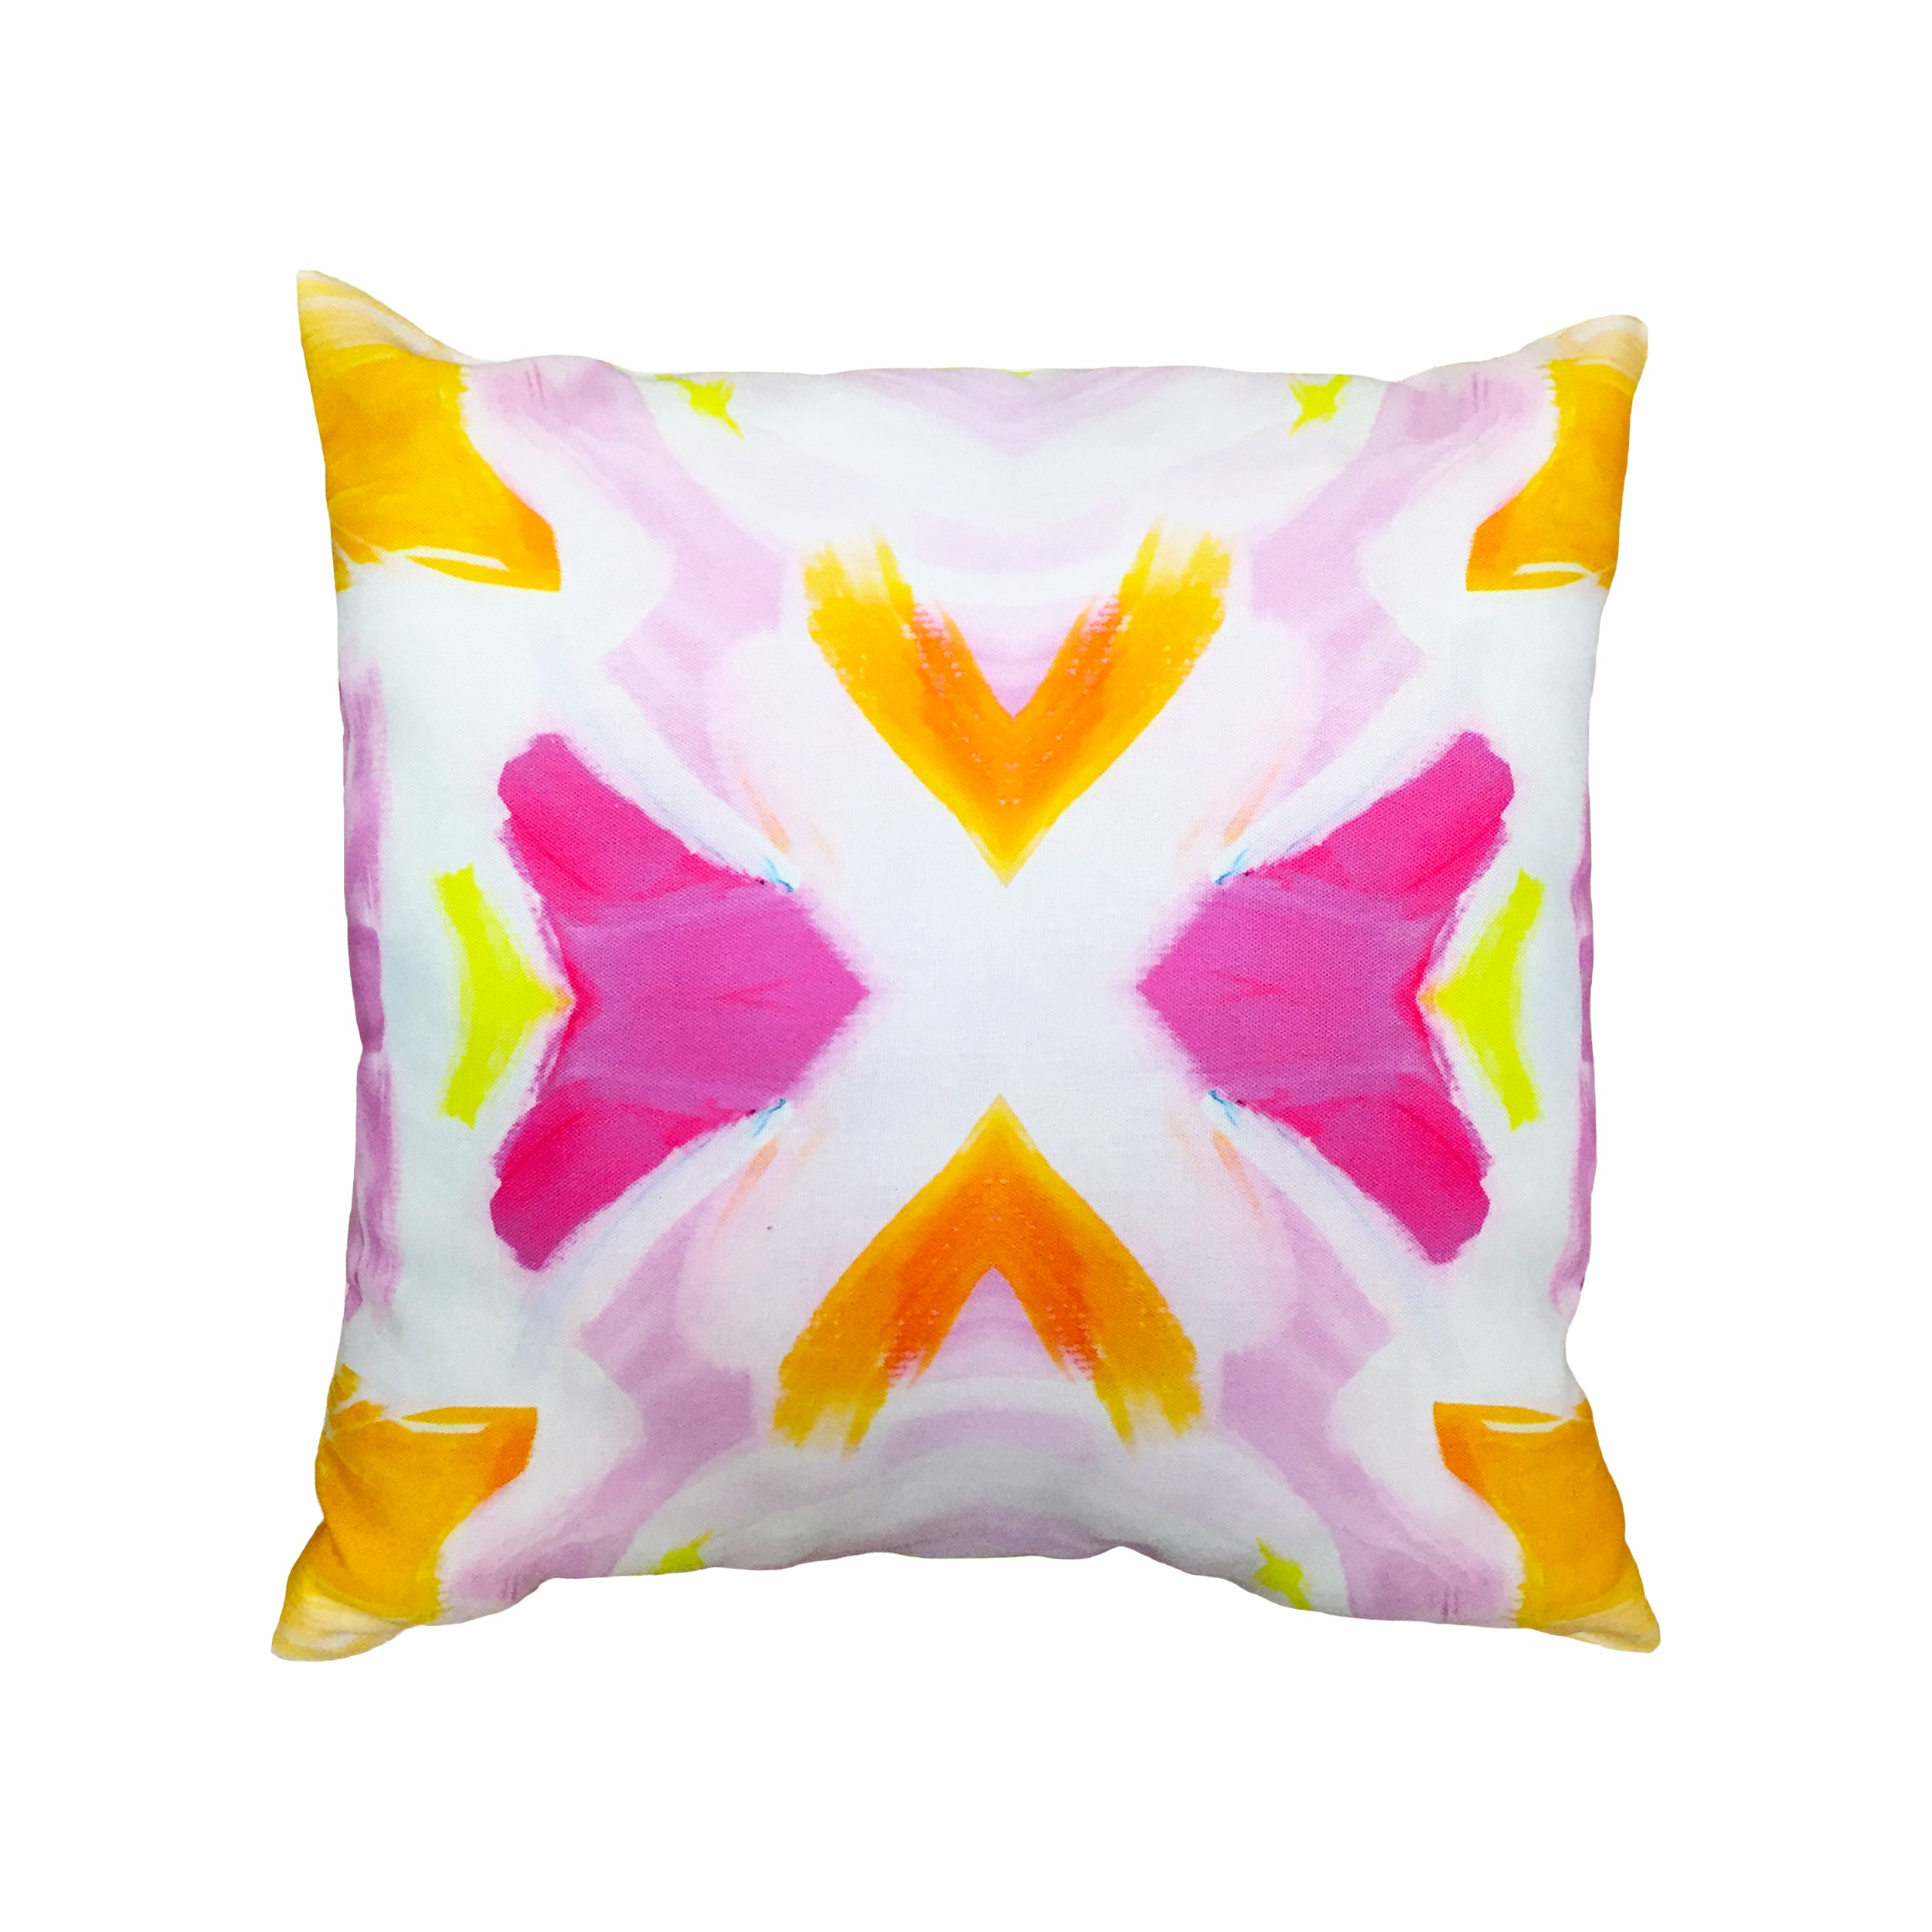 Fabric by the Yard - Delpit - The Blush Label - Vibrant Resort Wear & Home Decor